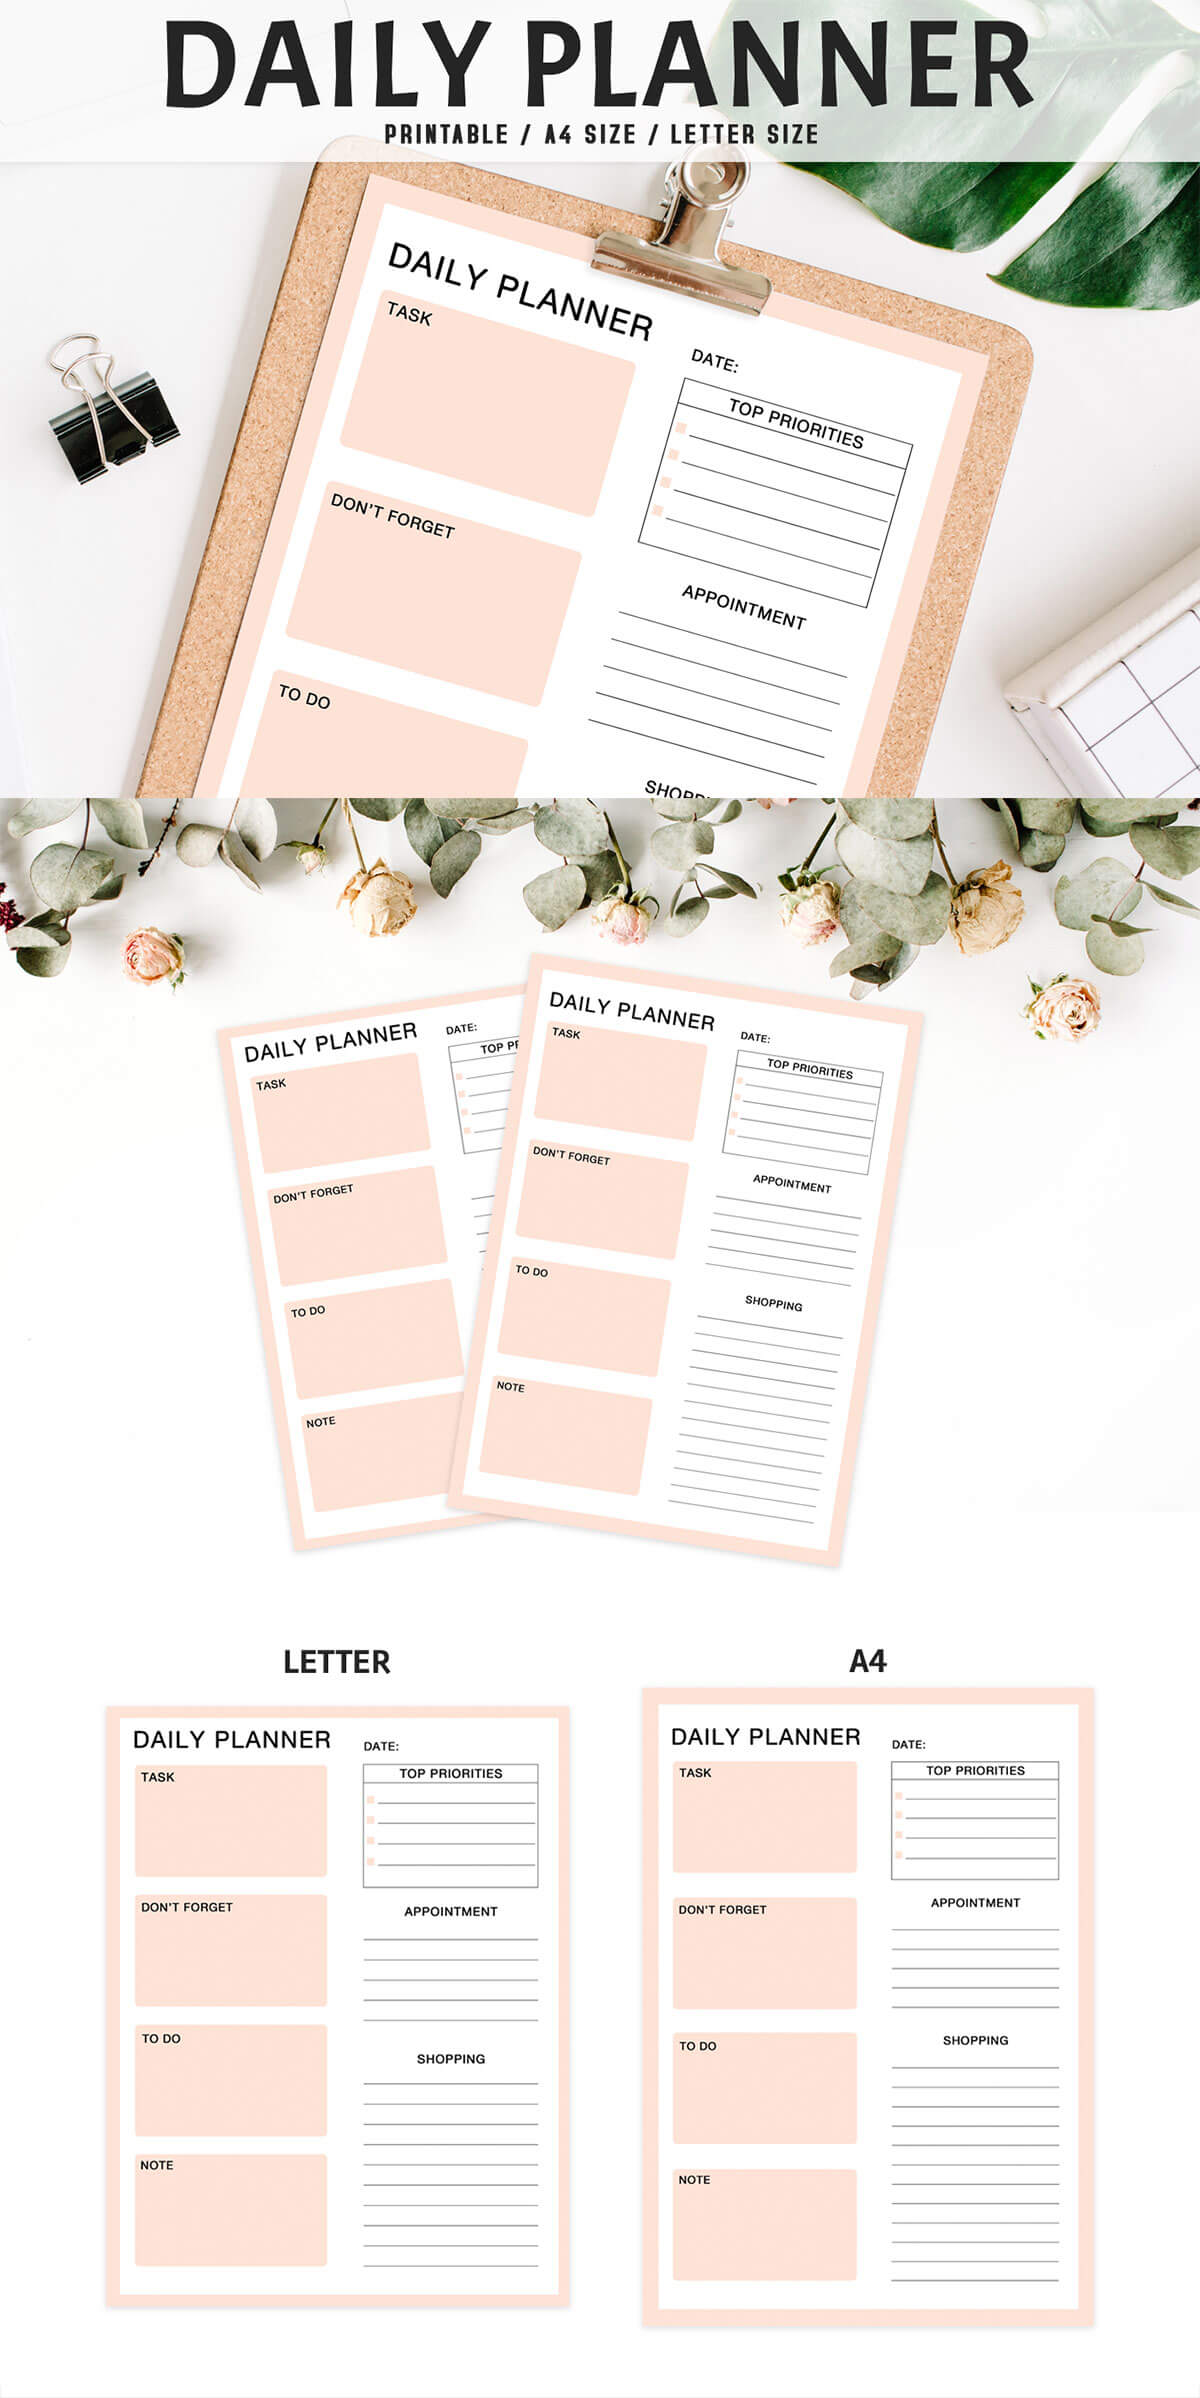 Free Colorful Daily Planner Printable V2